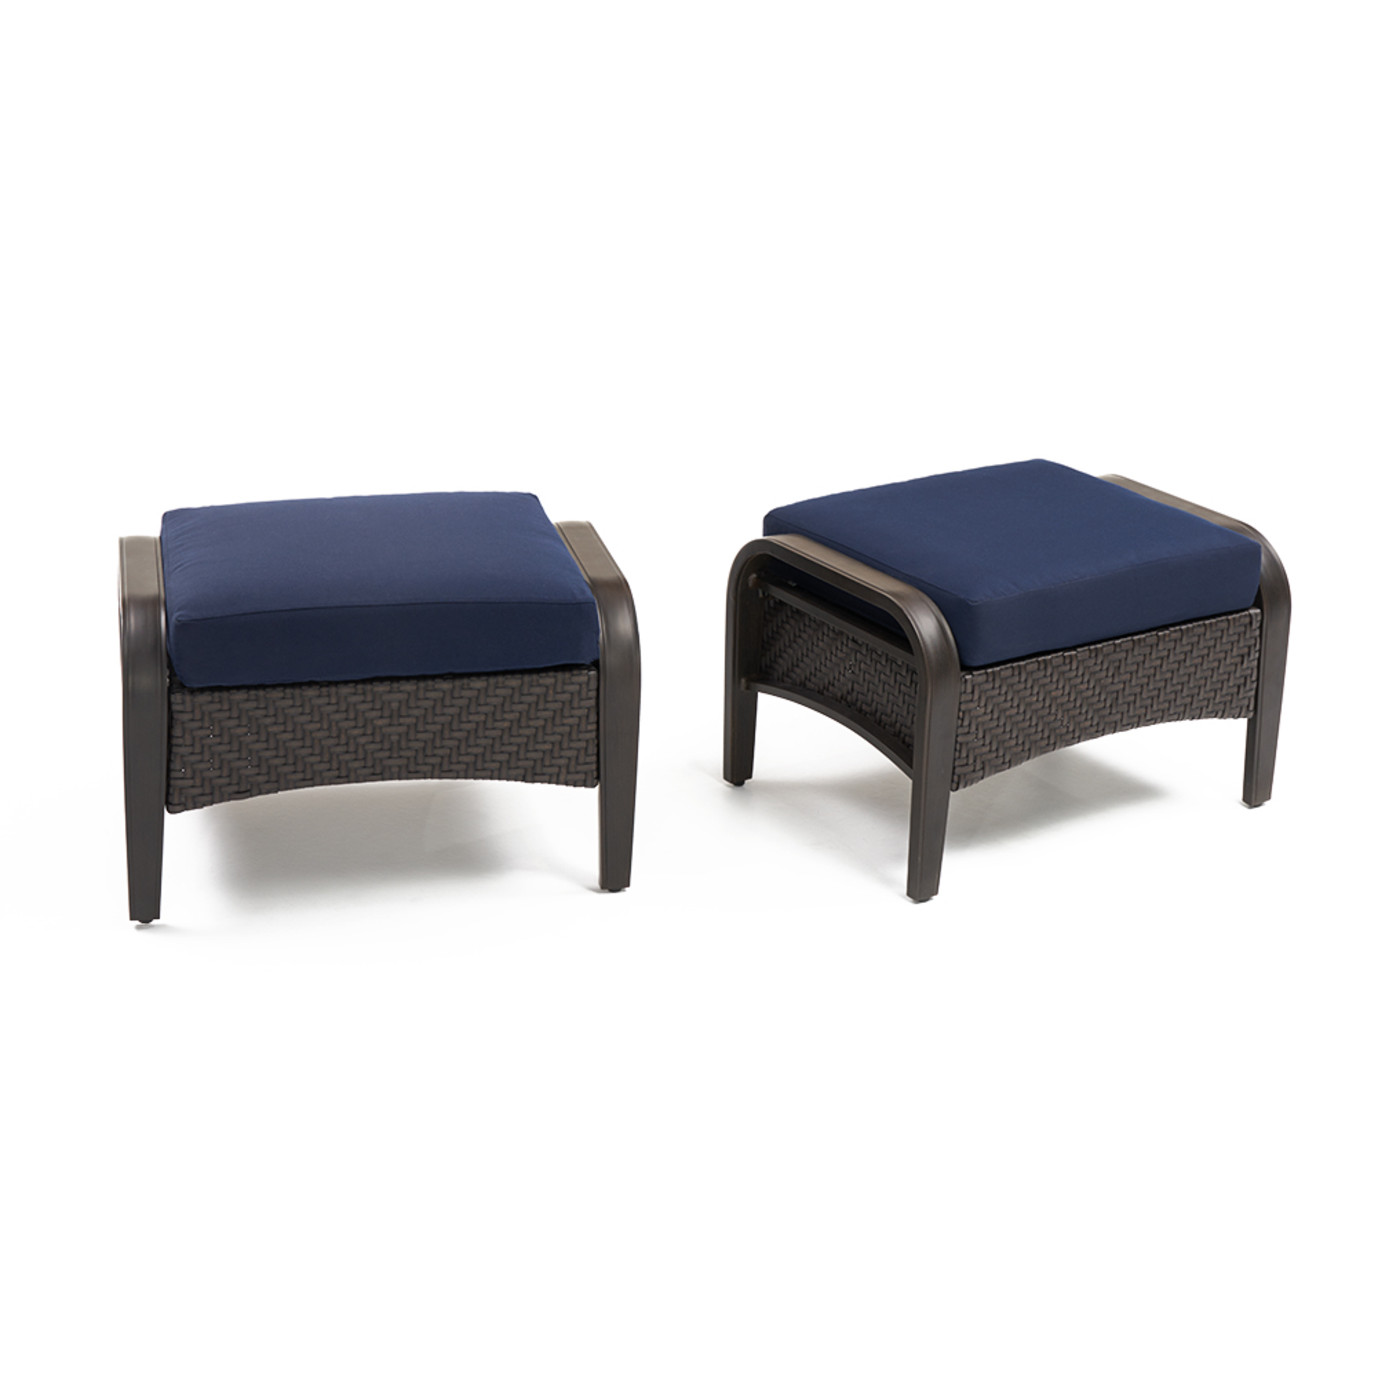 Barcelo™ Club Ottomans - Navy Blue